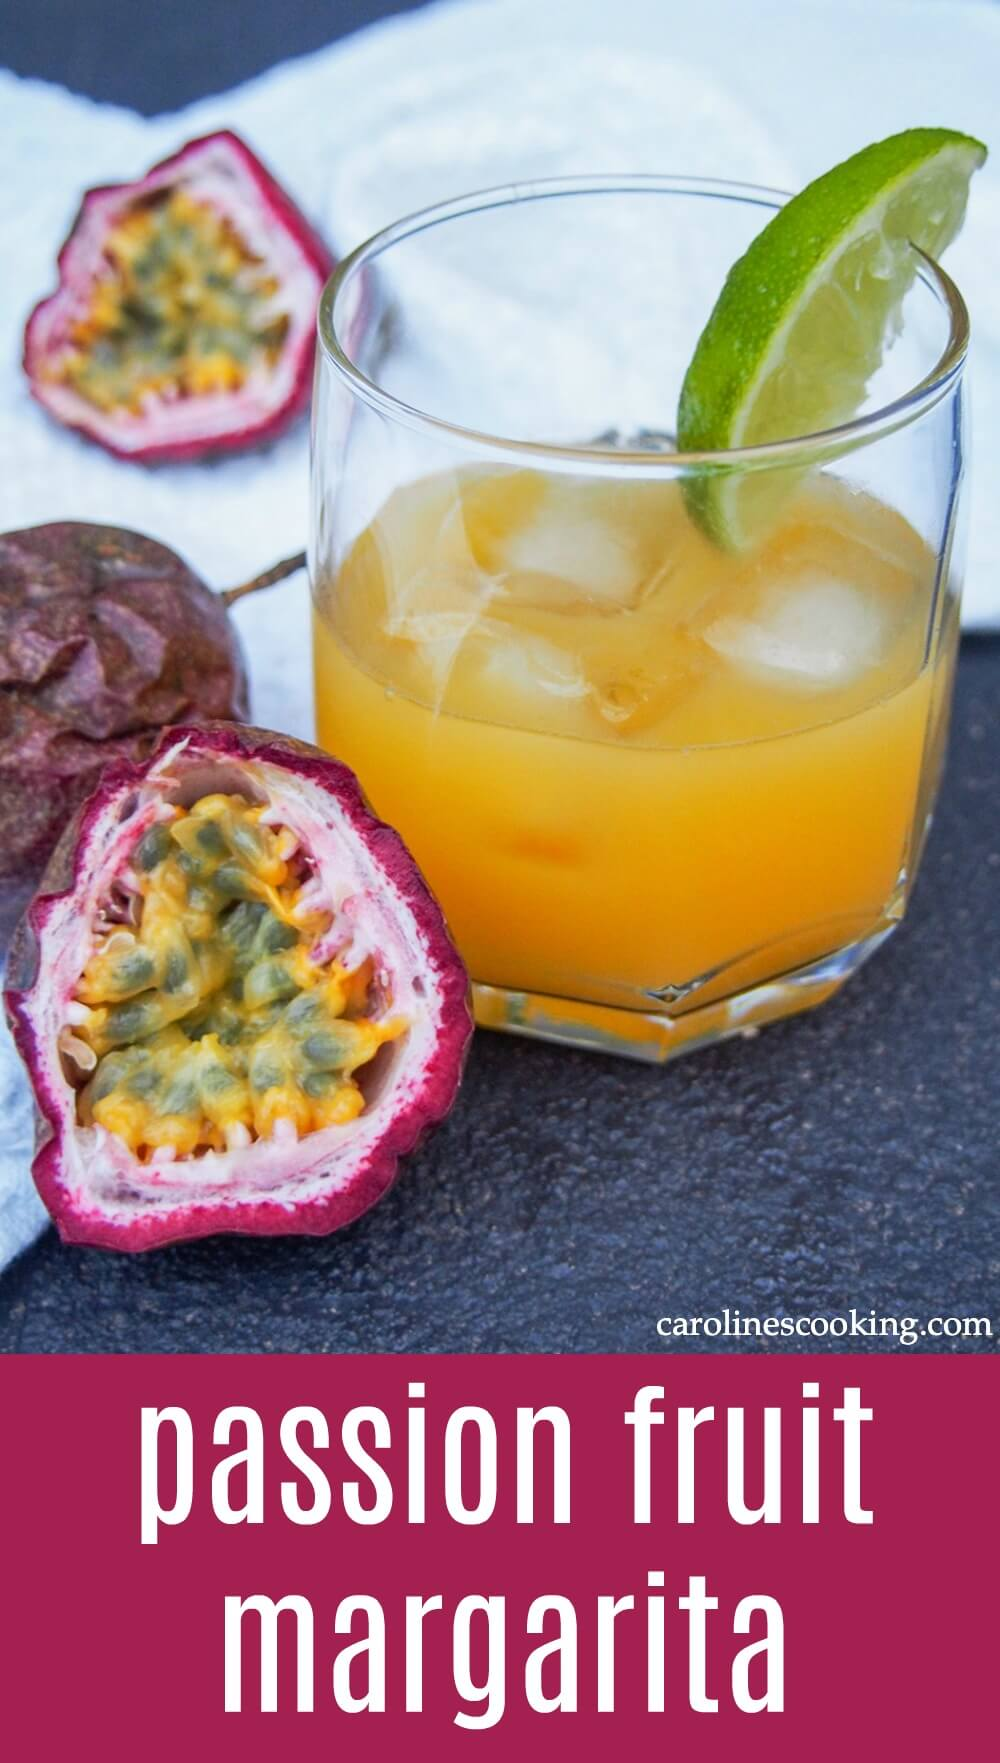 This passion fruit margarita puts an aromatically fruity twist on the classic cocktail. Easy to make, using fresh fruit, it's perfect served over ice on a warm day. #margarita #passionfruit #cocktail #cincodemayo